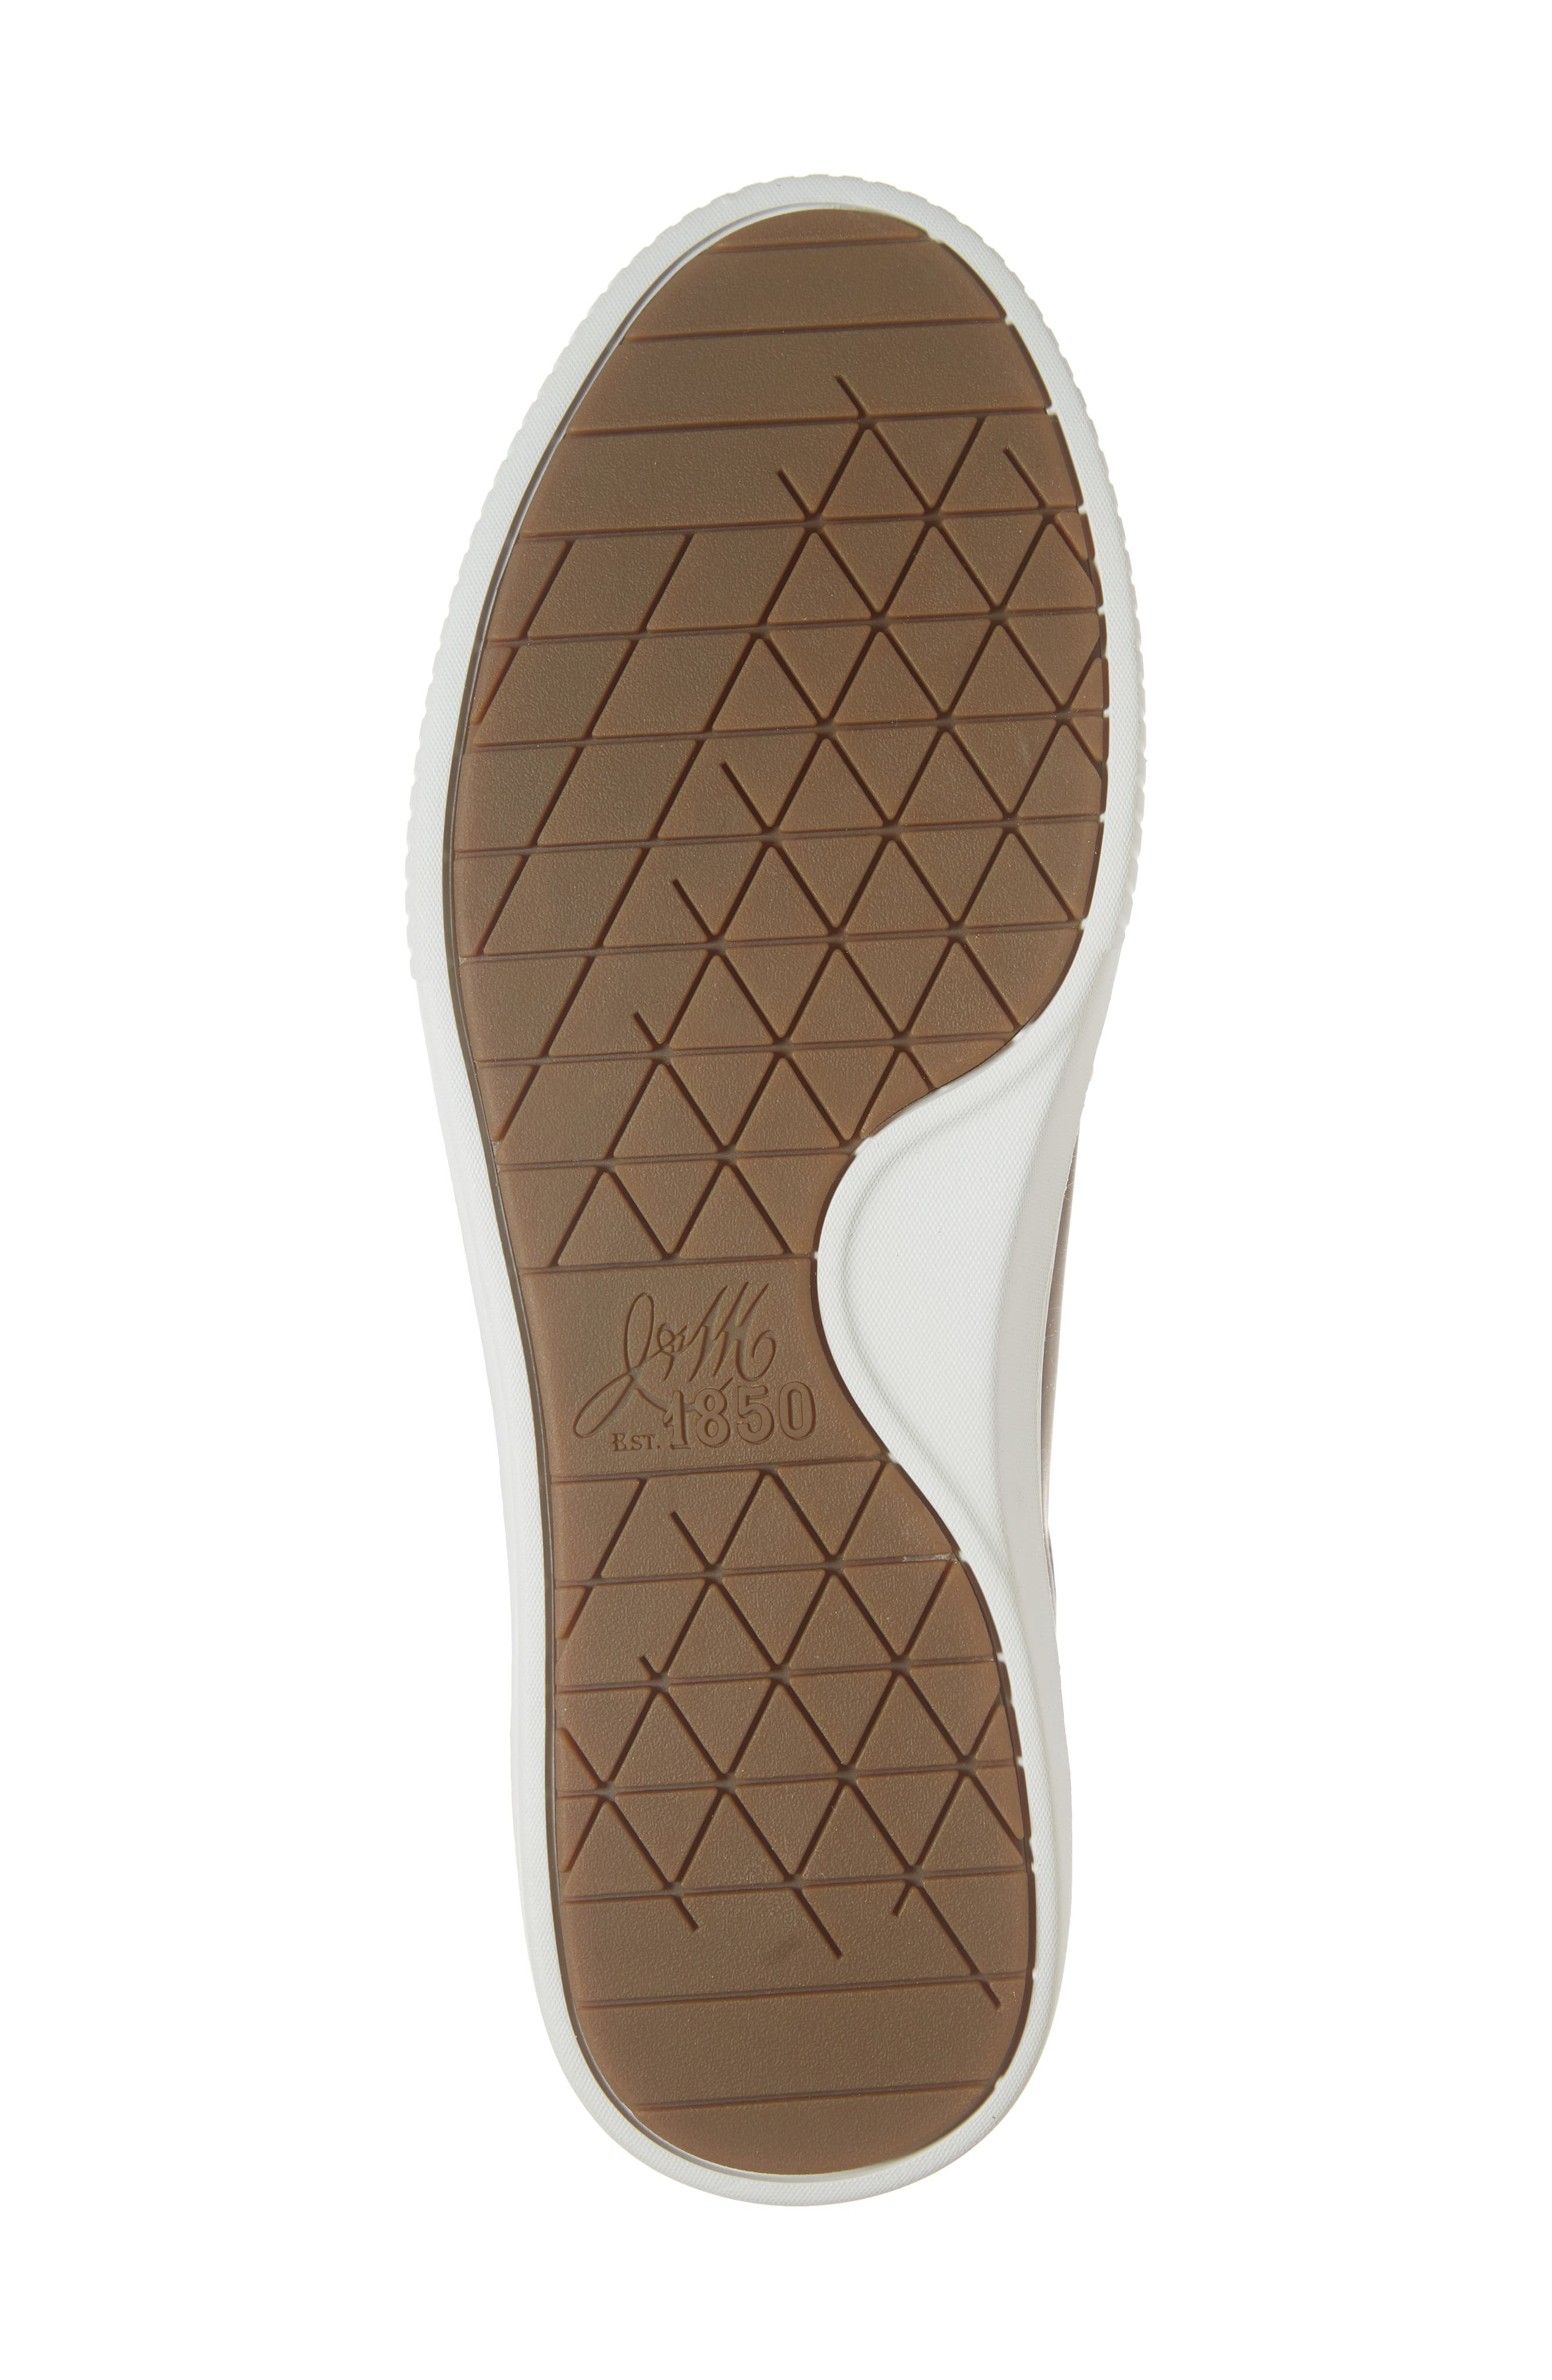 Toliver Low Top Sneaker,                             Alternate thumbnail 6, color,                             TAN LEATHER